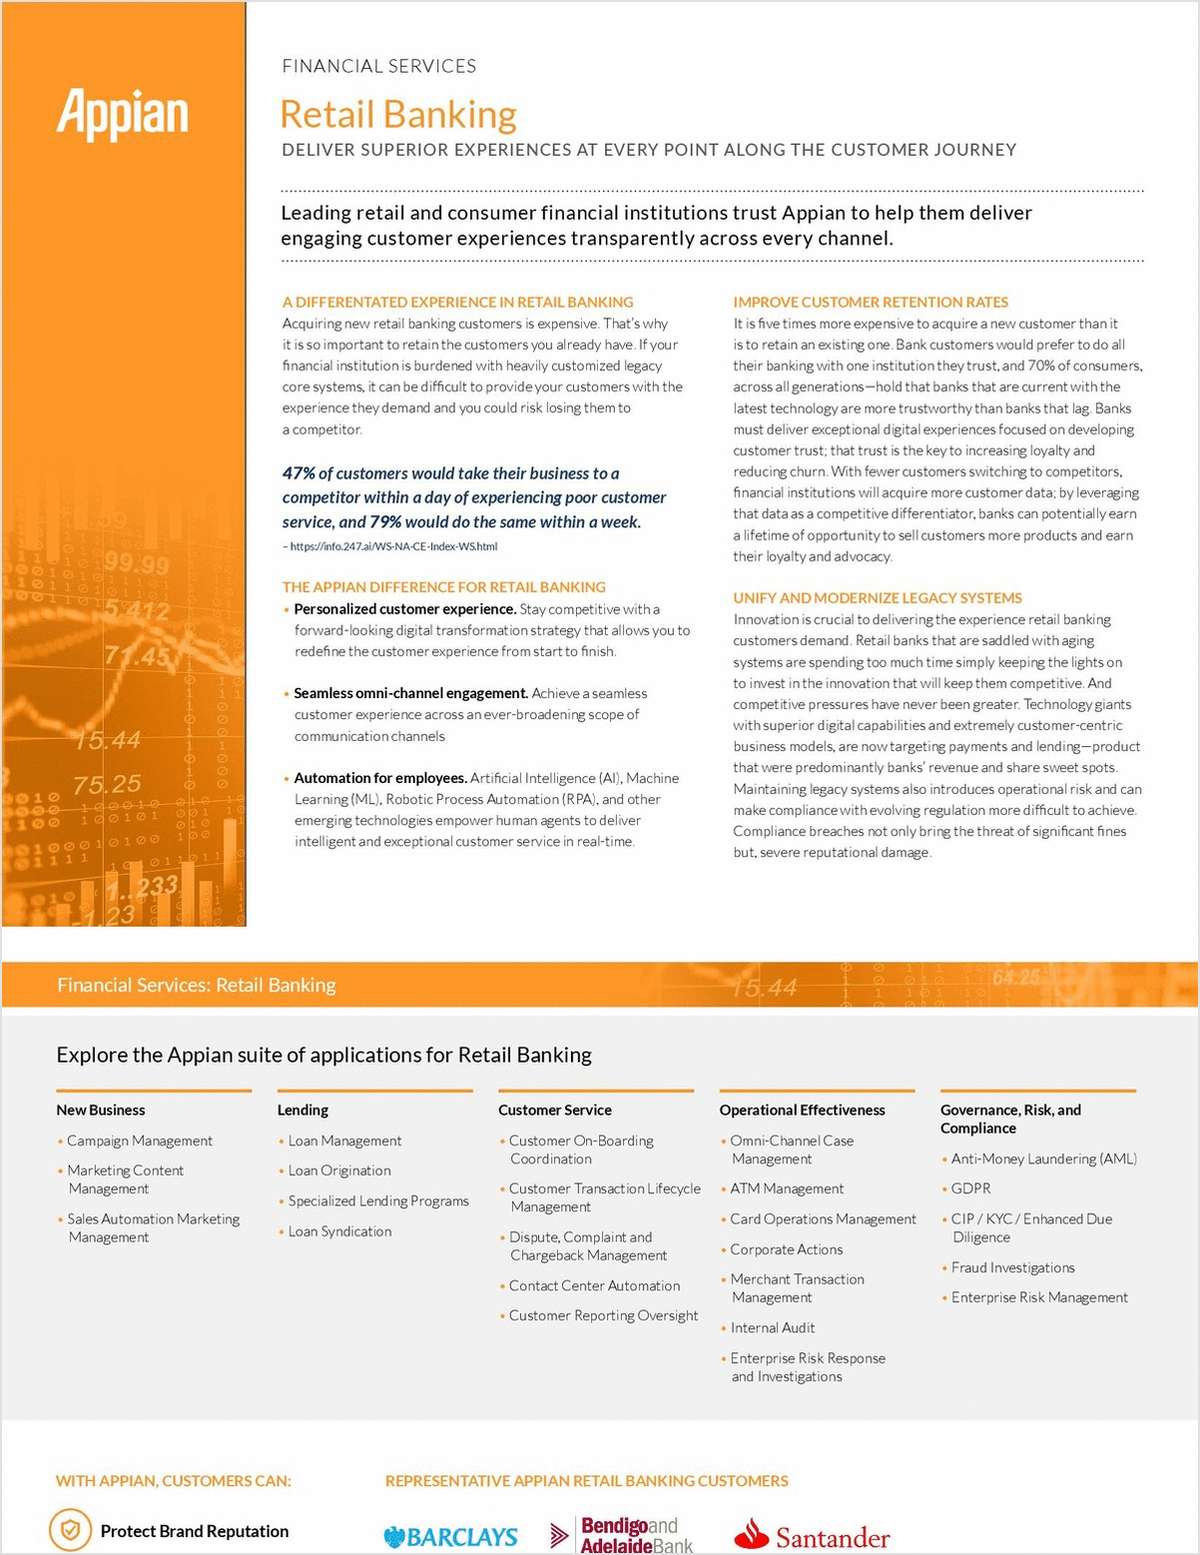 Appian for Retail Banking